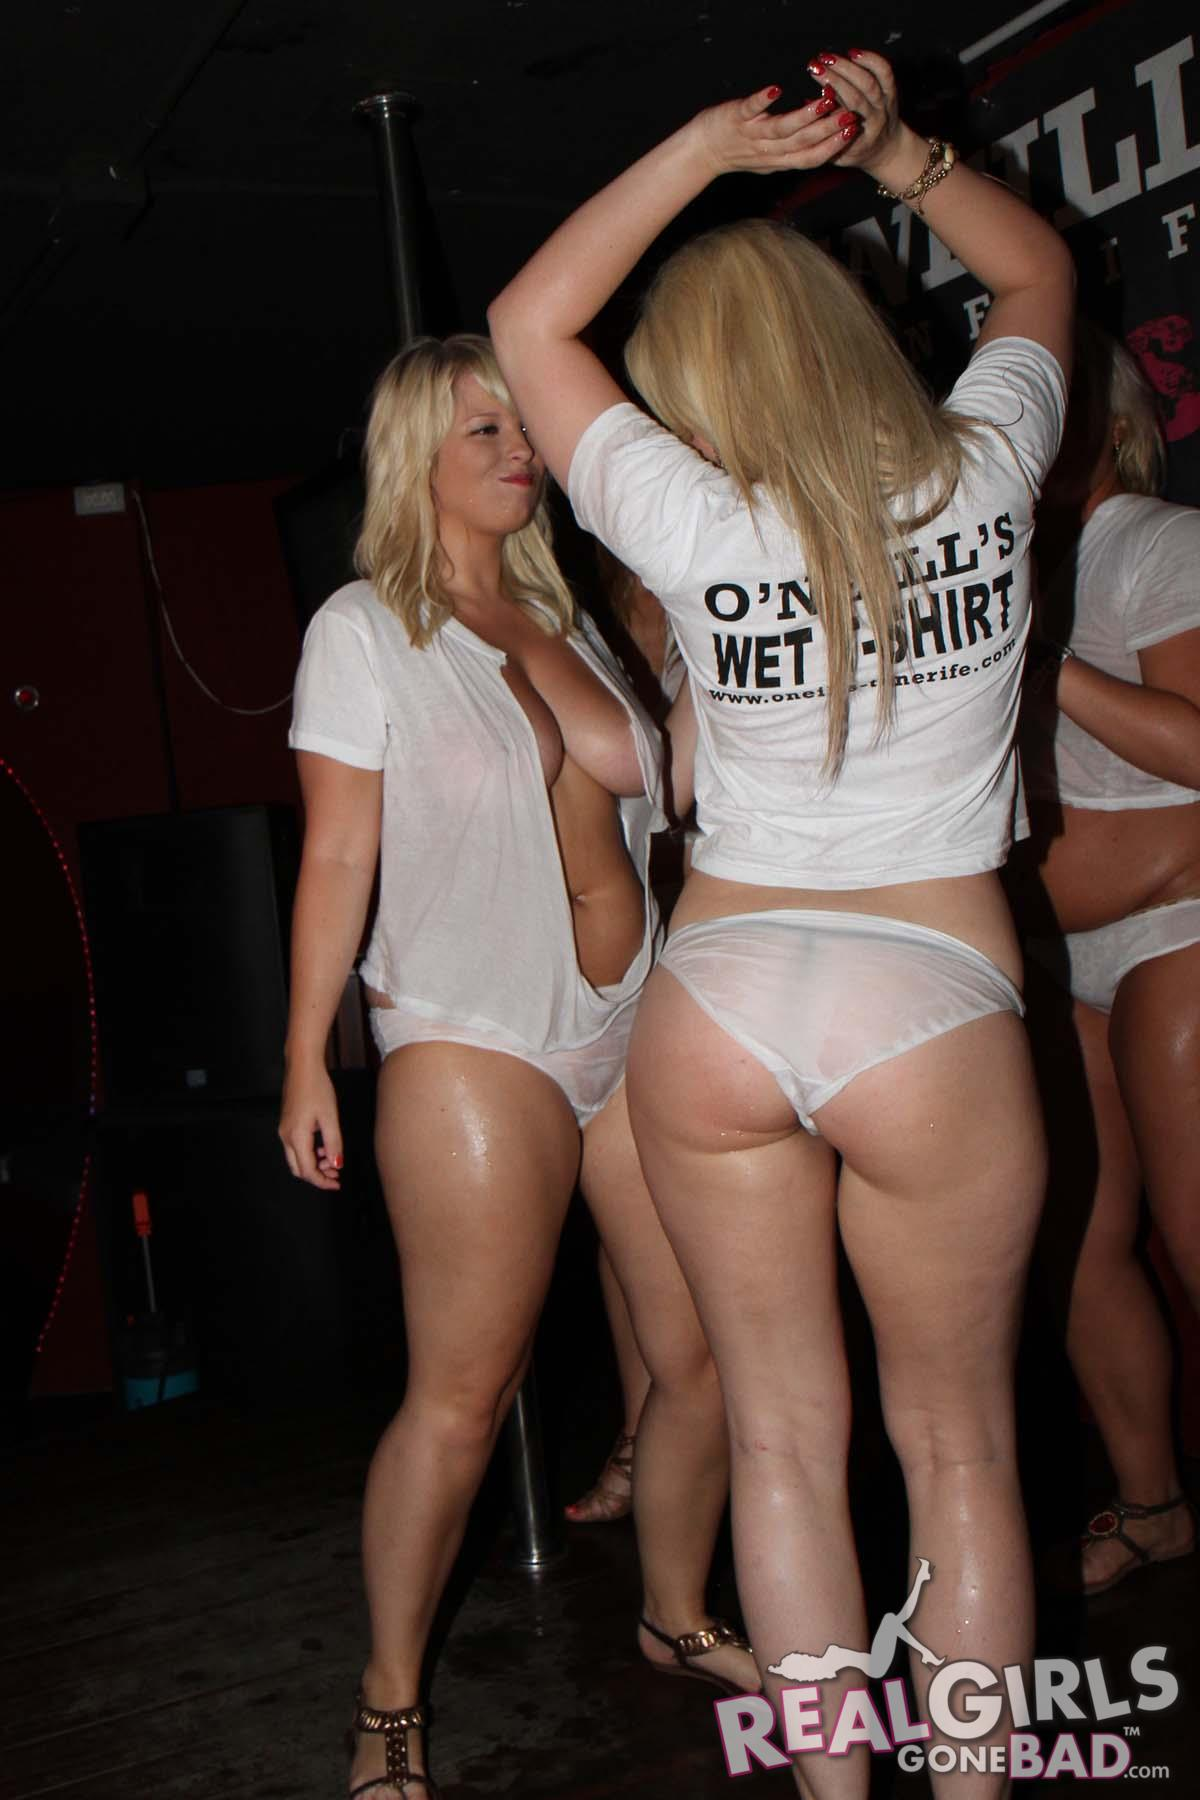 Real Girls Gone Bad - Wet T-Shirt Contest 16-8930